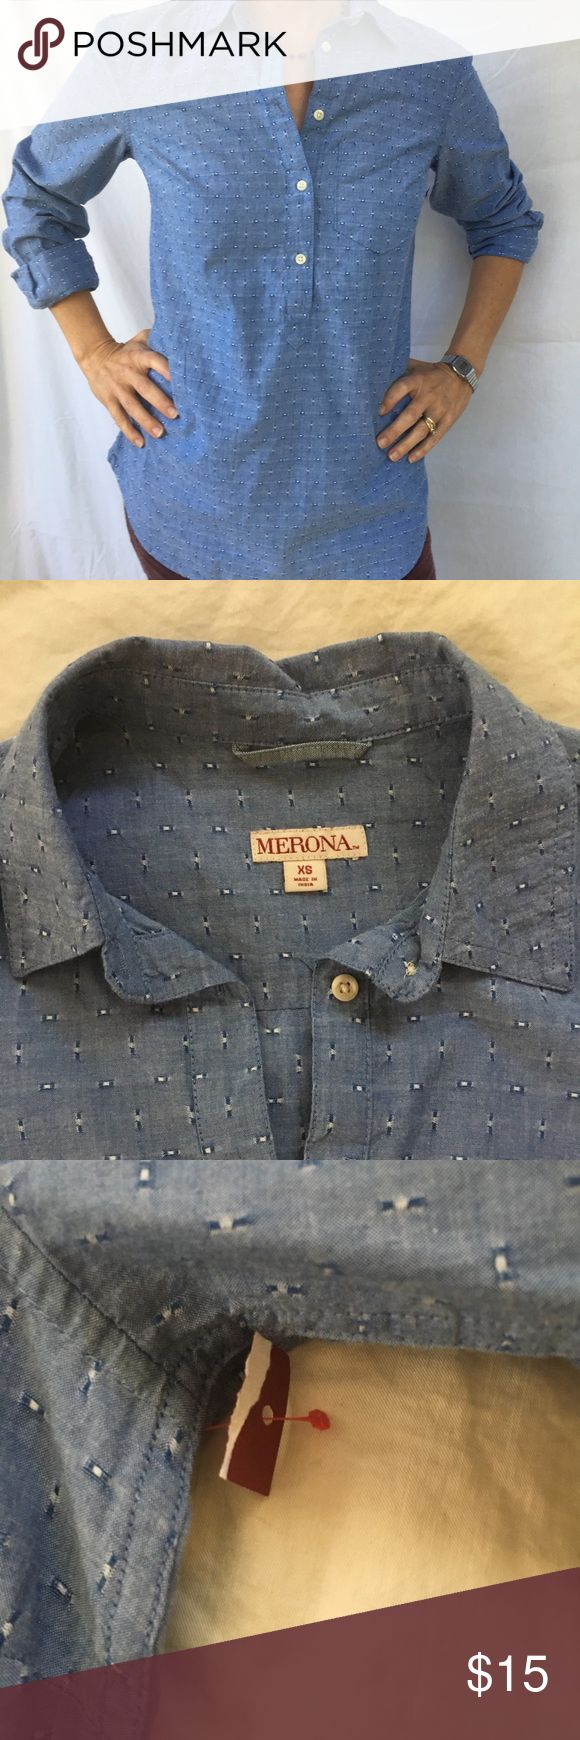 Merona ladies oxford Blue chambray collared shirt buttons part way down. 100% Cotton new with tags. Tag is torn as shown. Mossimo Supply Co Tops Button Down Shirts